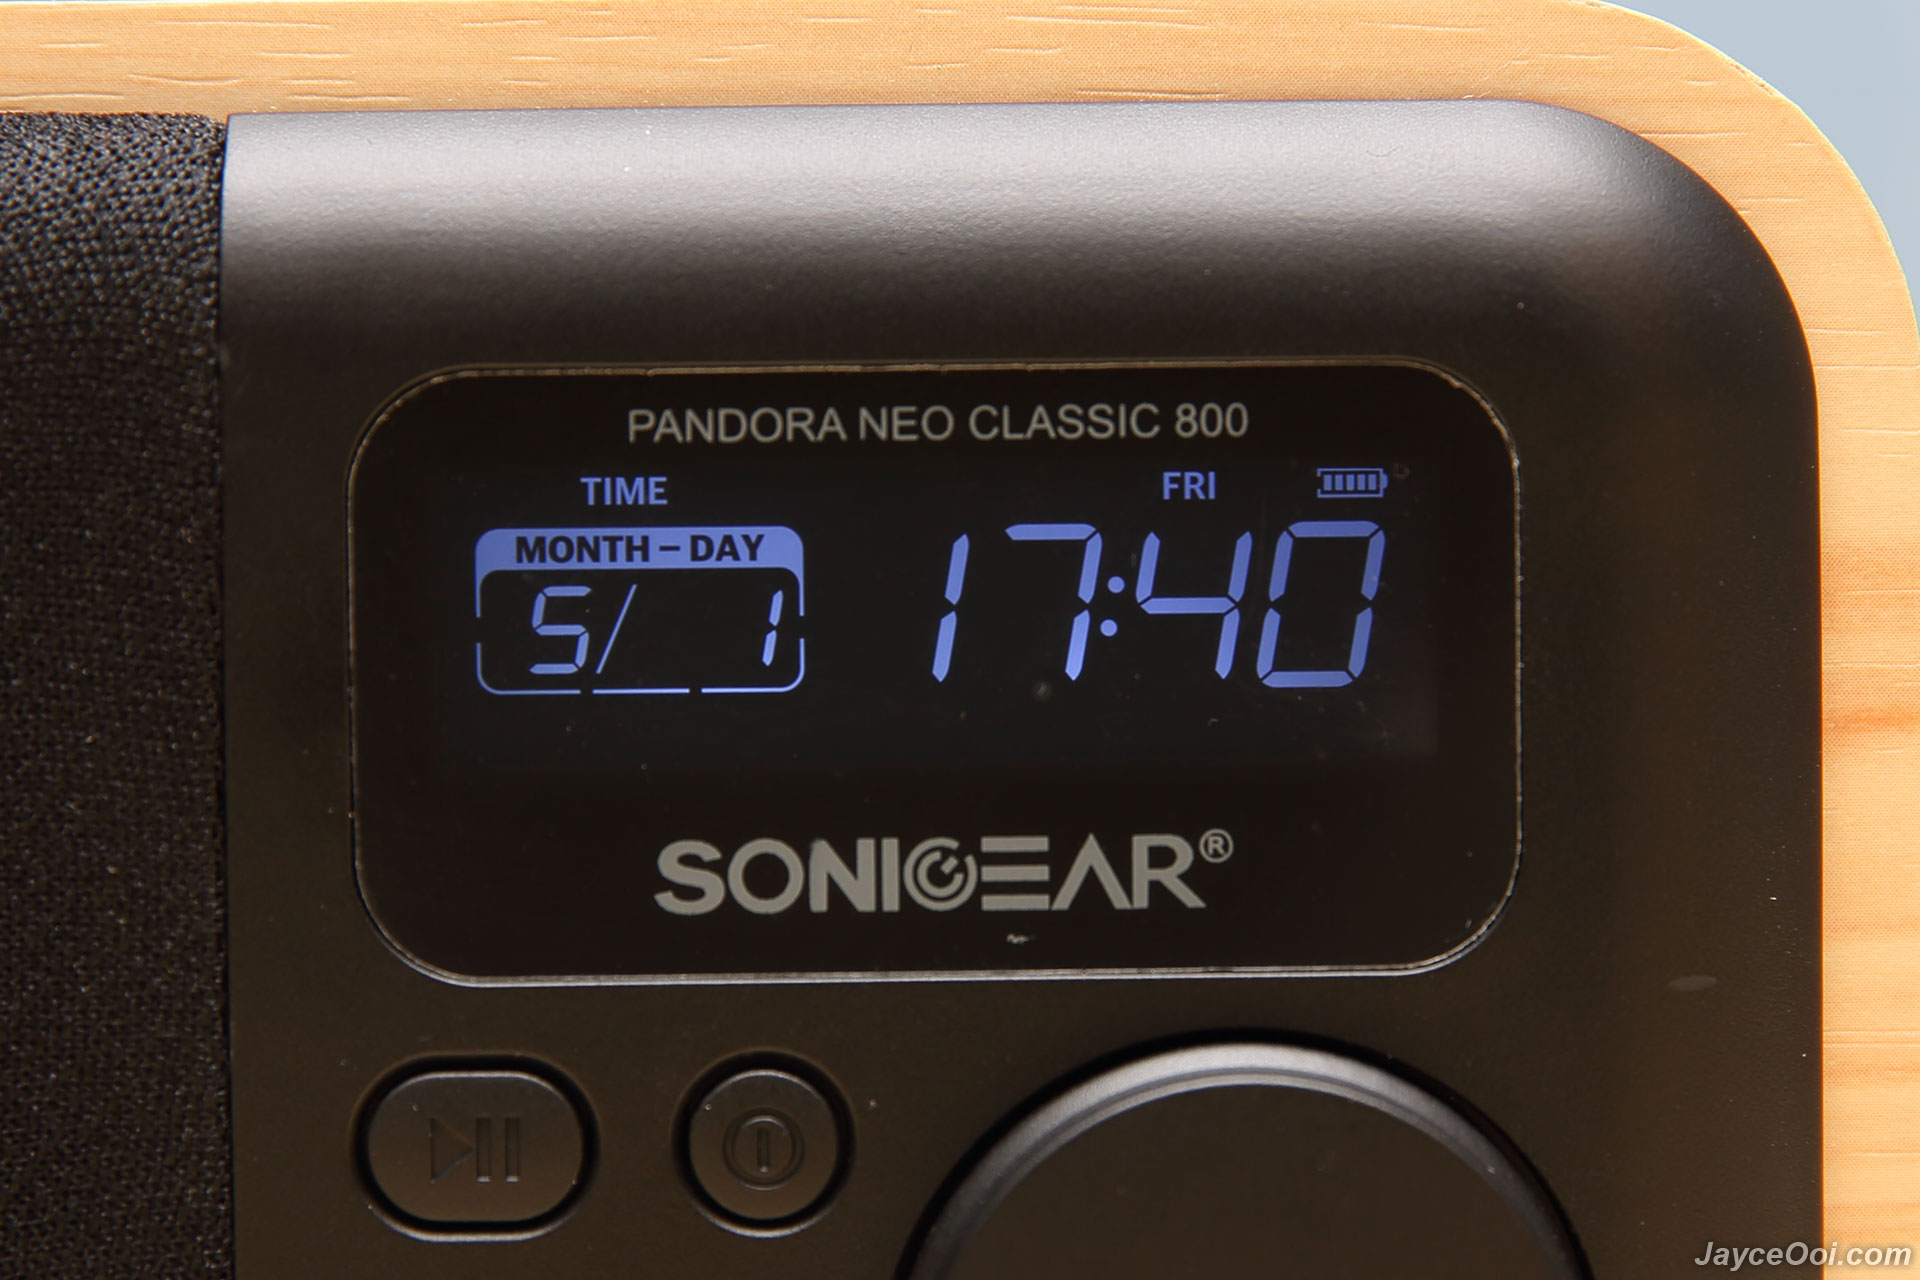 Sonicgear Pandora Neo Classic 800 Bluetooth Speaker Review Quatro 2 Super Loud 20 Usb By Red 11